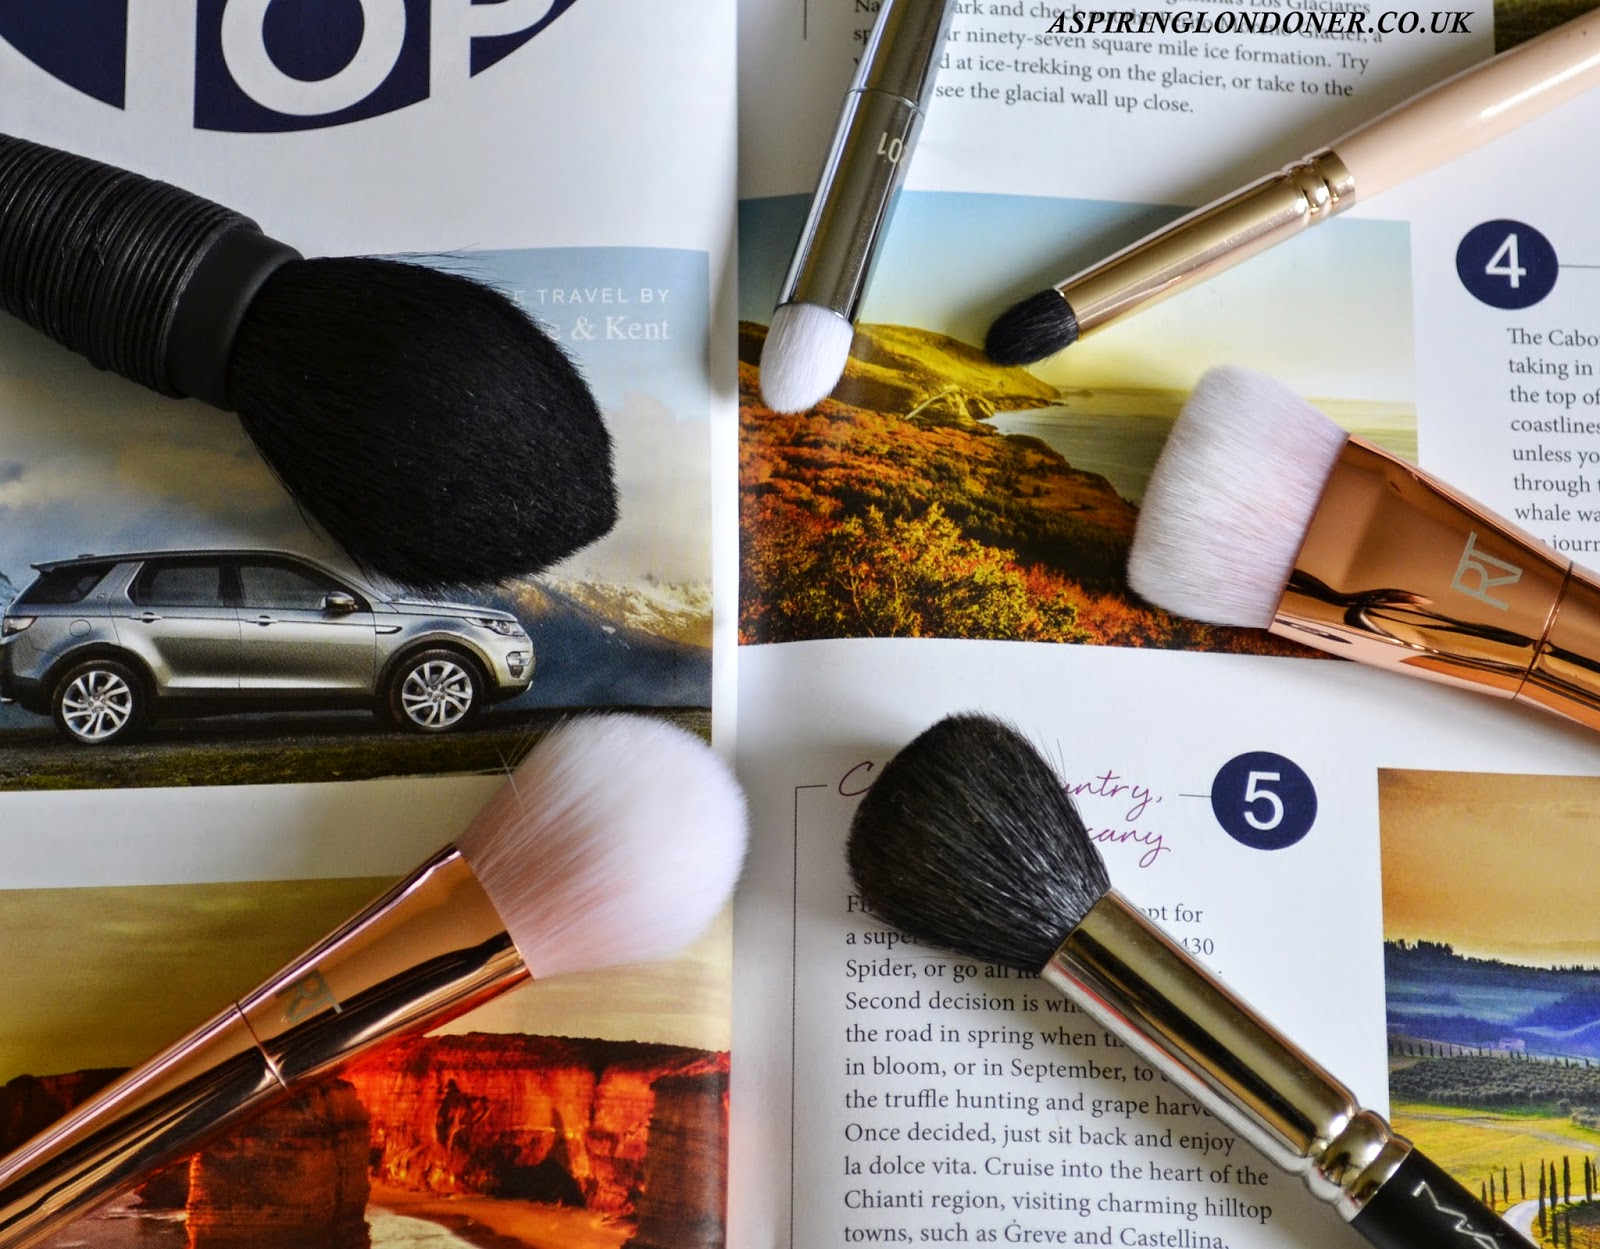 Real Techniques Bold Metals Brush Collection Review - Aspiring Londoner